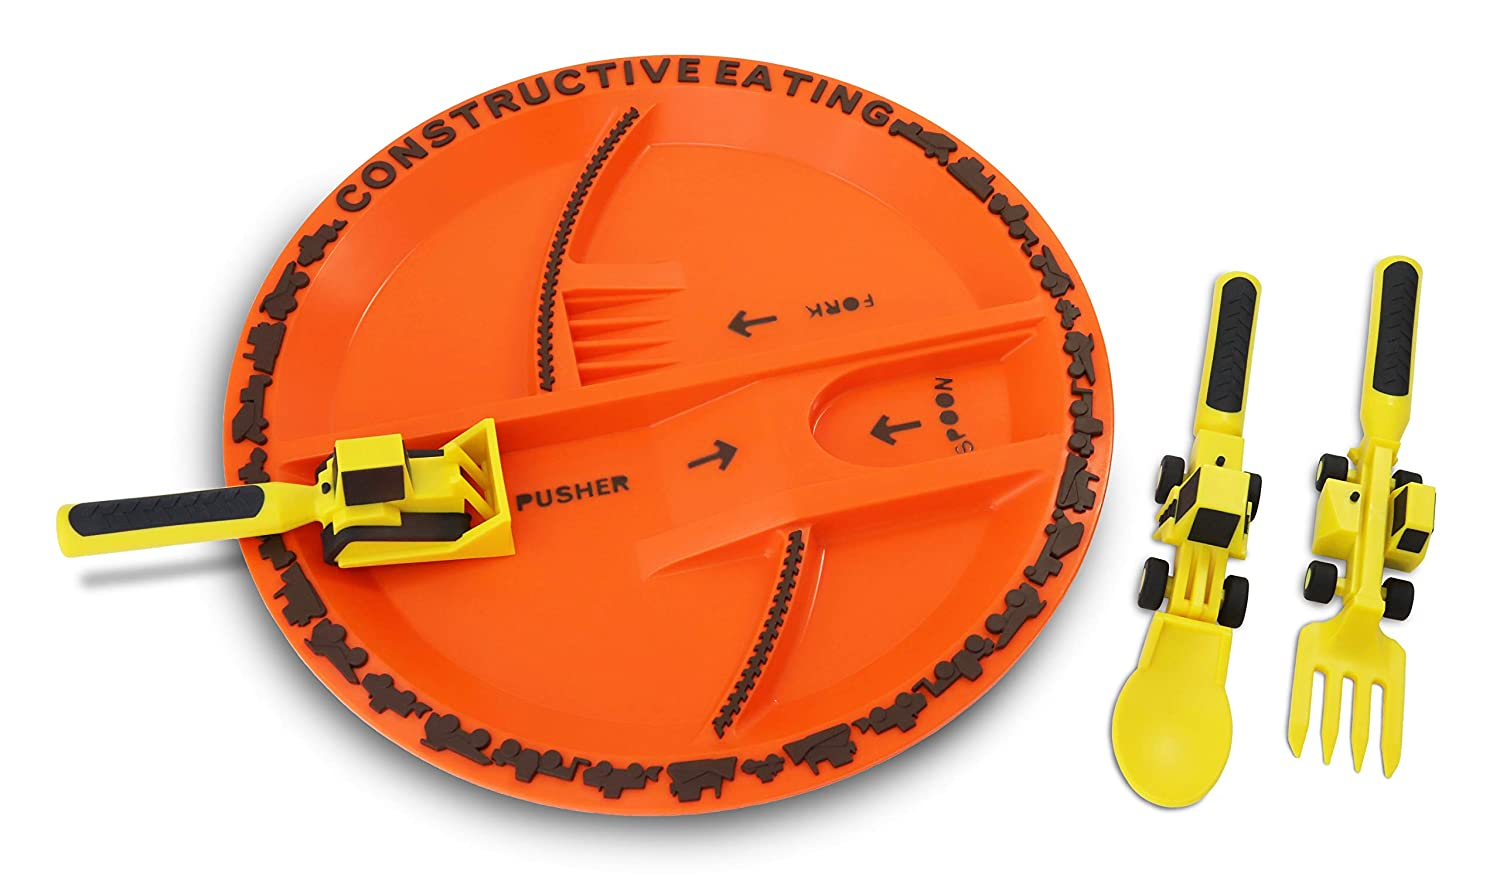 Constructive Eating Construction Plate with Construction Utensil Set for Toddlers, Babies, Infants and Kids - Flatware Toys are Made in the USA with FDA Approved Materials for Safe and Fun Eating